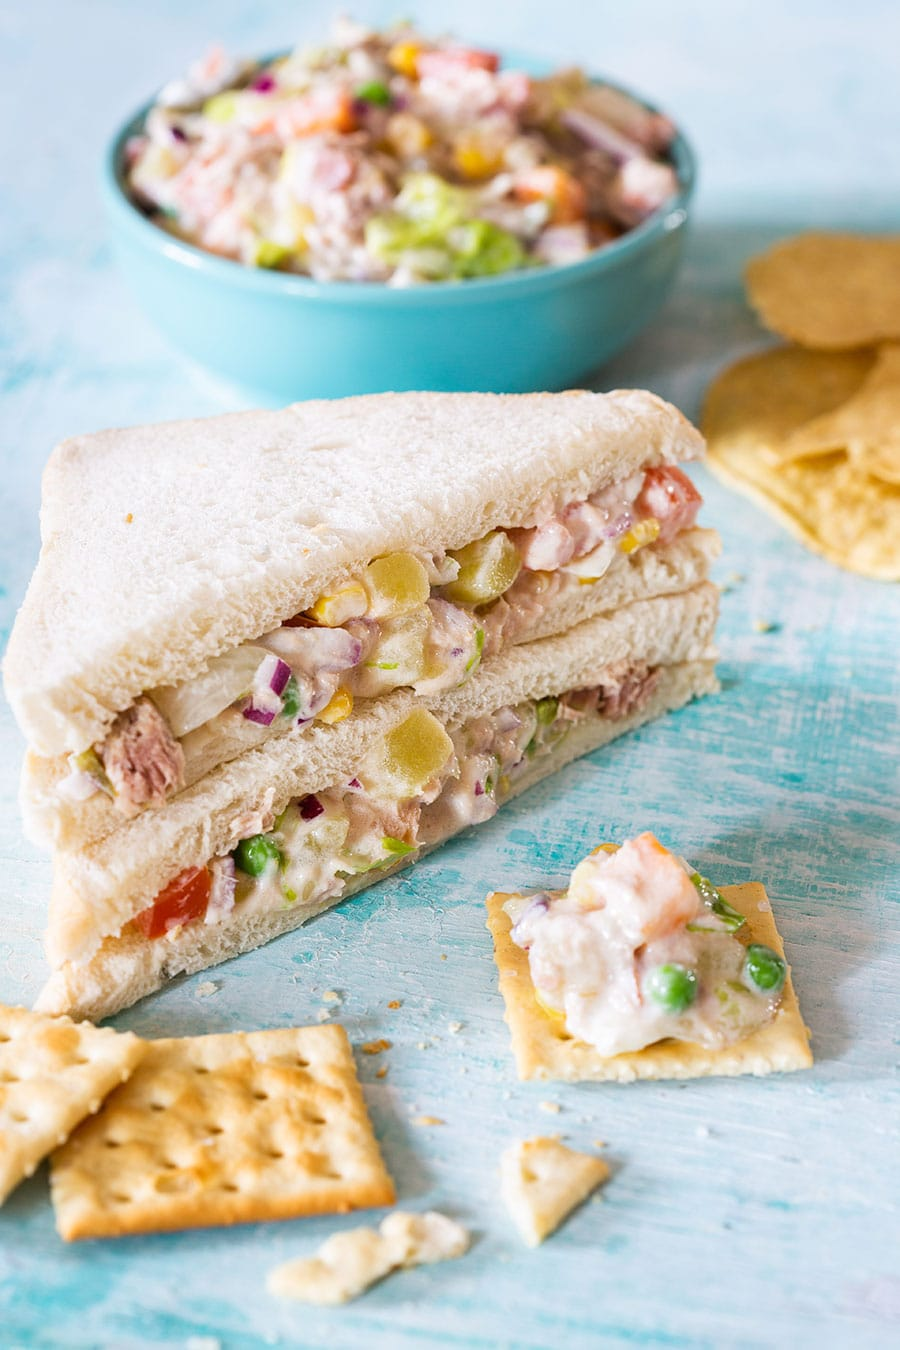 Mexican tuna salad served on a sandwich and saltines.